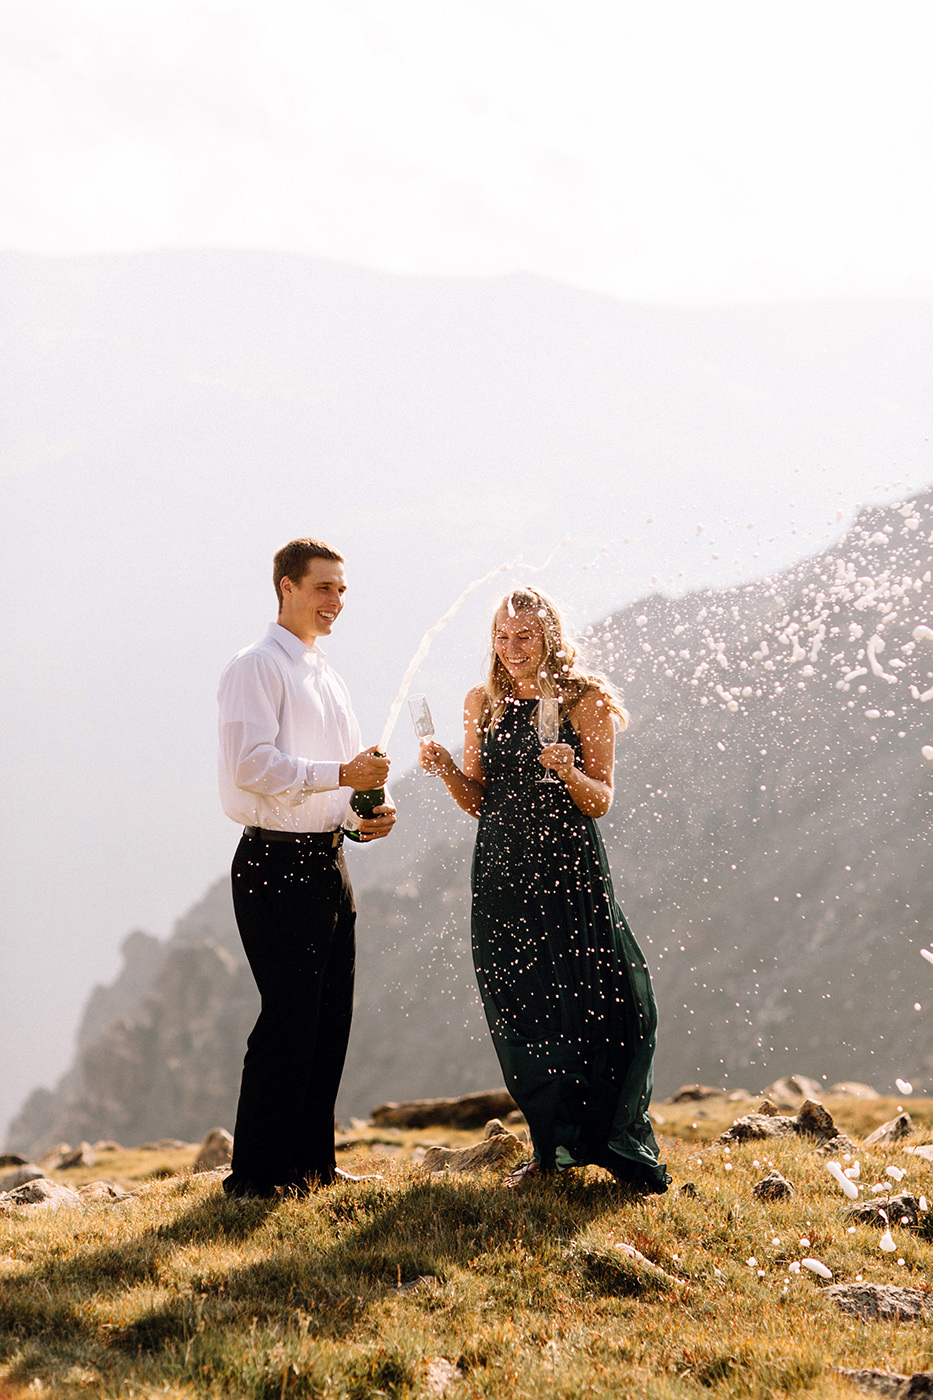 Liz Osban Photography Cheyenne Wyoming Ft Collins Colorado Estes Park Rocky Mountain National Park Photographer Grand Teton Jacksonhole Iceland Destination Elopement Adventure Wedding Elope34.jpg